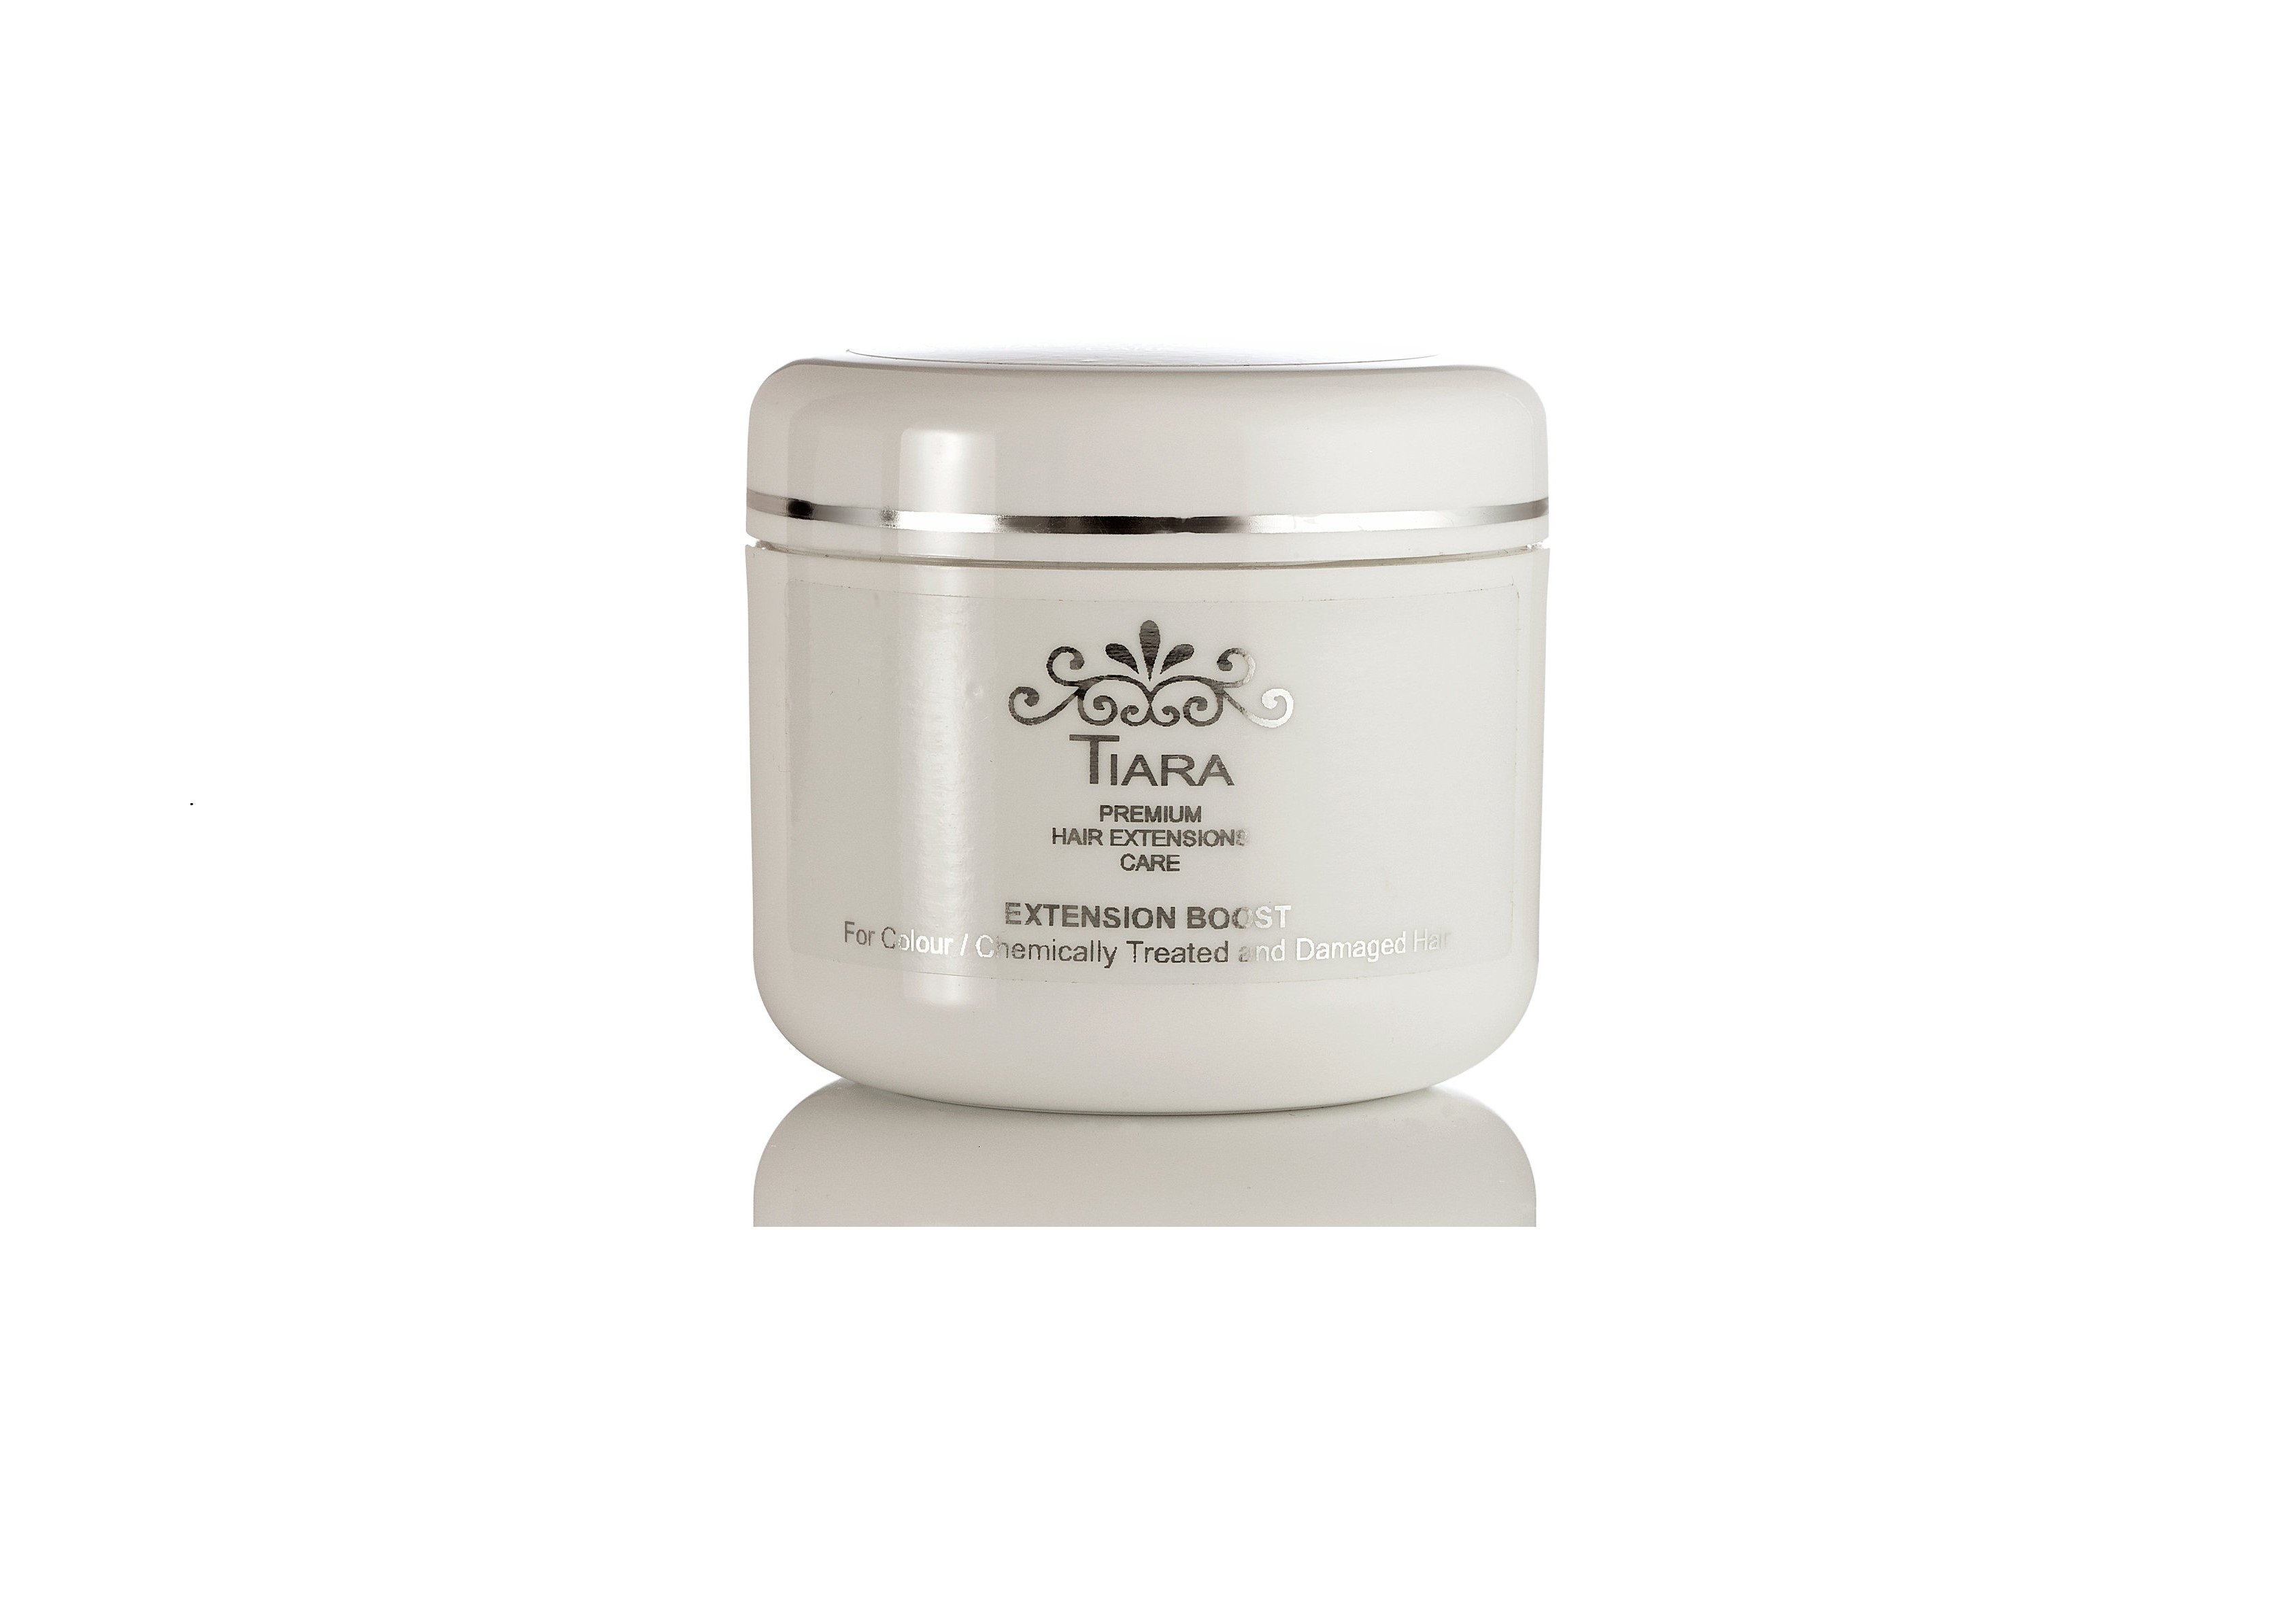 Tiara Extensions Boost (100ml)